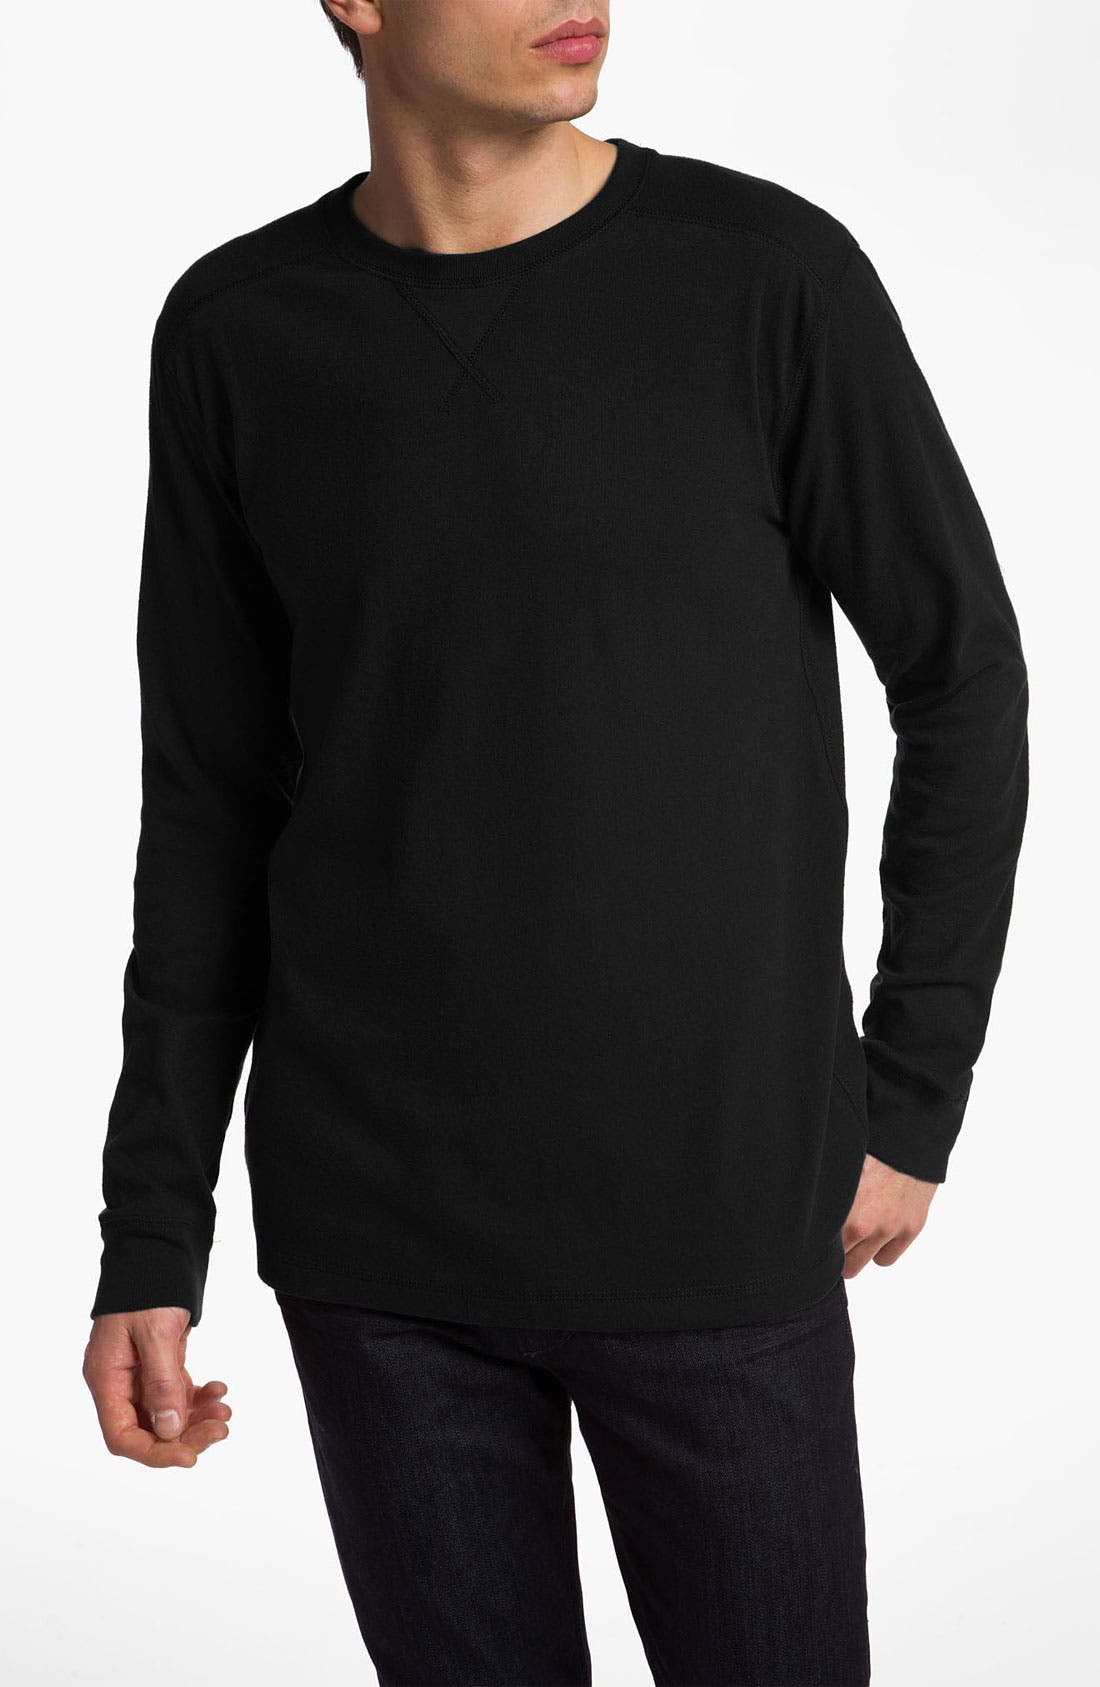 Main Image - Quiksilver 'Snit' Long Sleeve Thermal T-Shirt